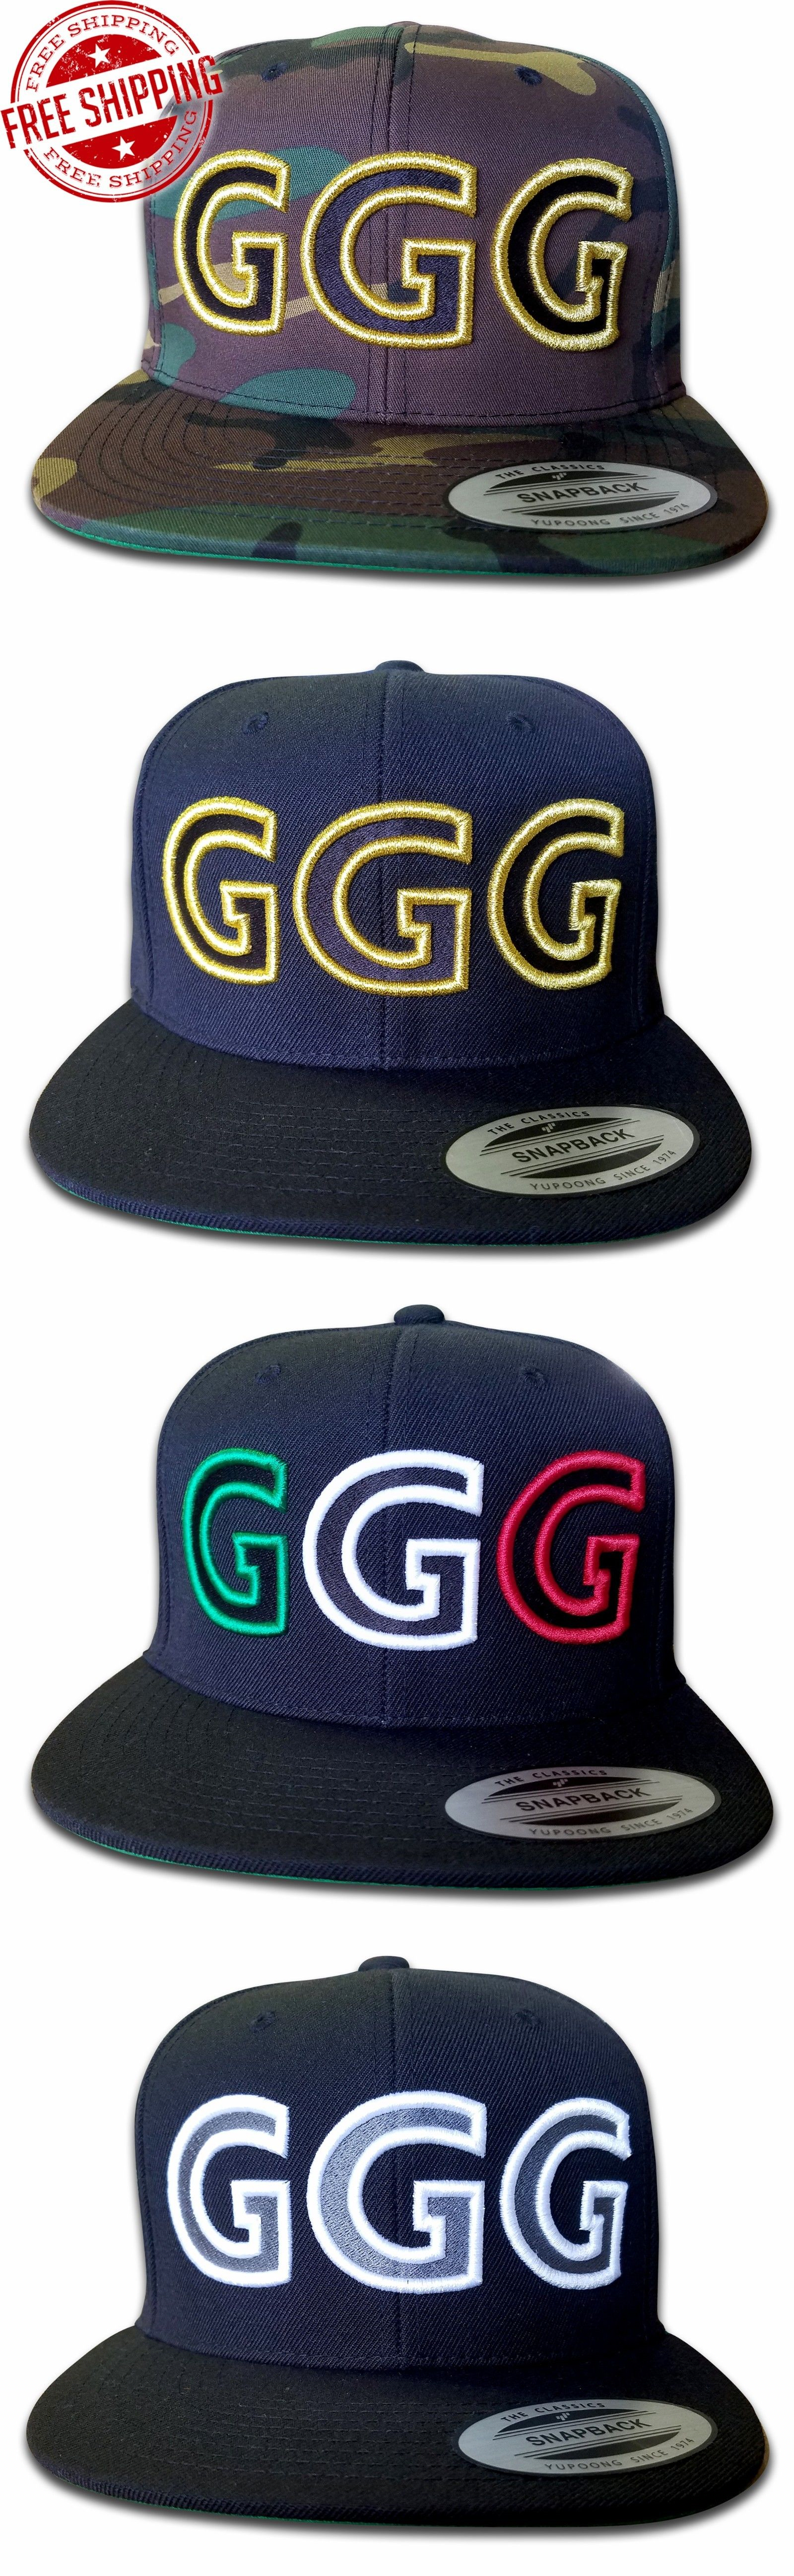 Hats 52365  Ggg Classic Snapback Cap Hat Gennady Golovkin All In Stock -   BUY IT NOW ONLY   34.99 on eBay! e582bc52271